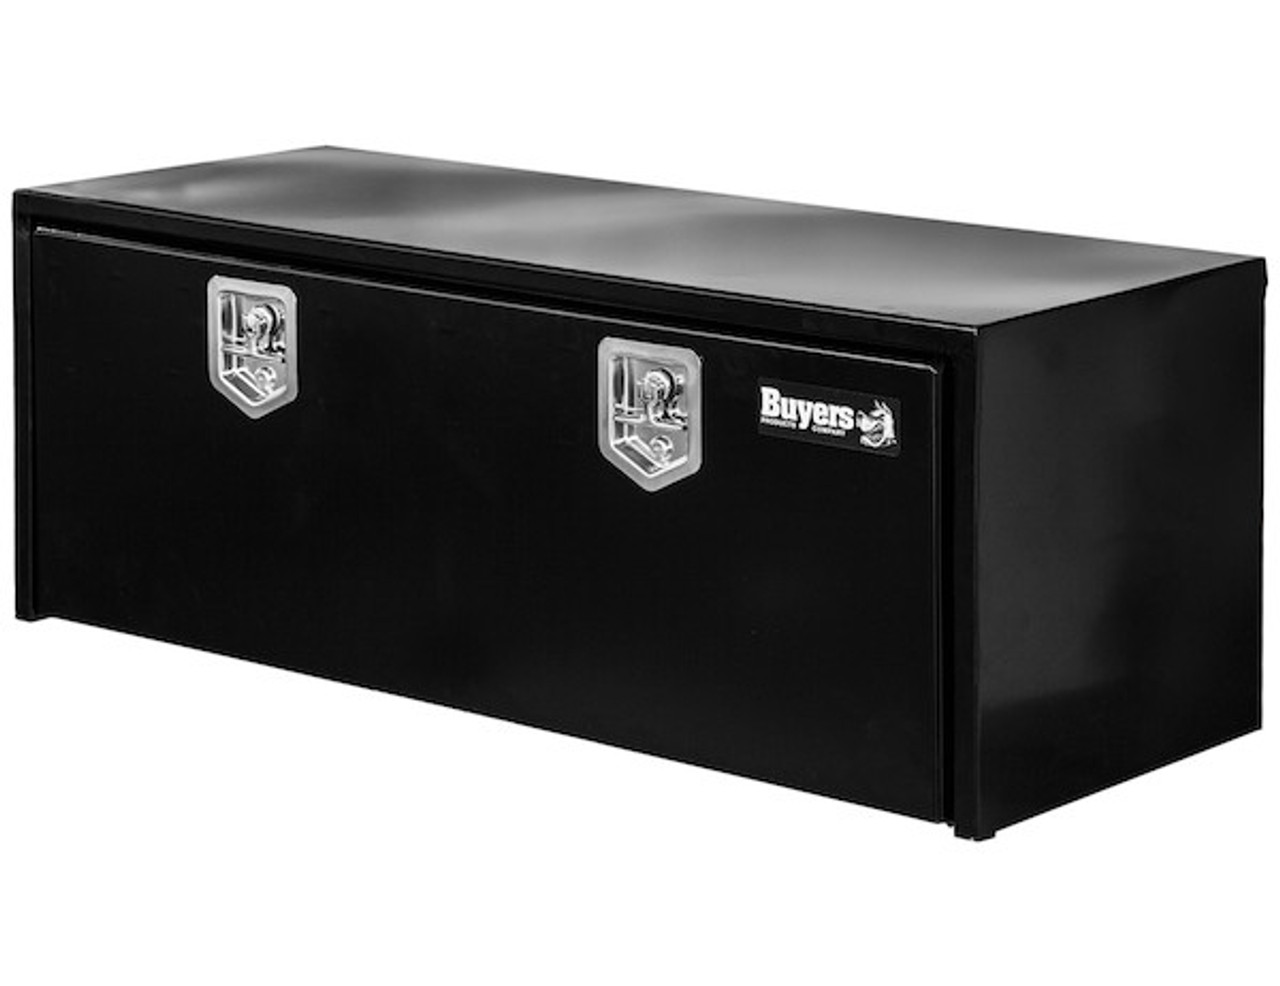 1704310 BUYERS PRODUCTS BLACK STEEL UNDERBODY TRUCK BOX WITH T-LATCH TOOLBOX